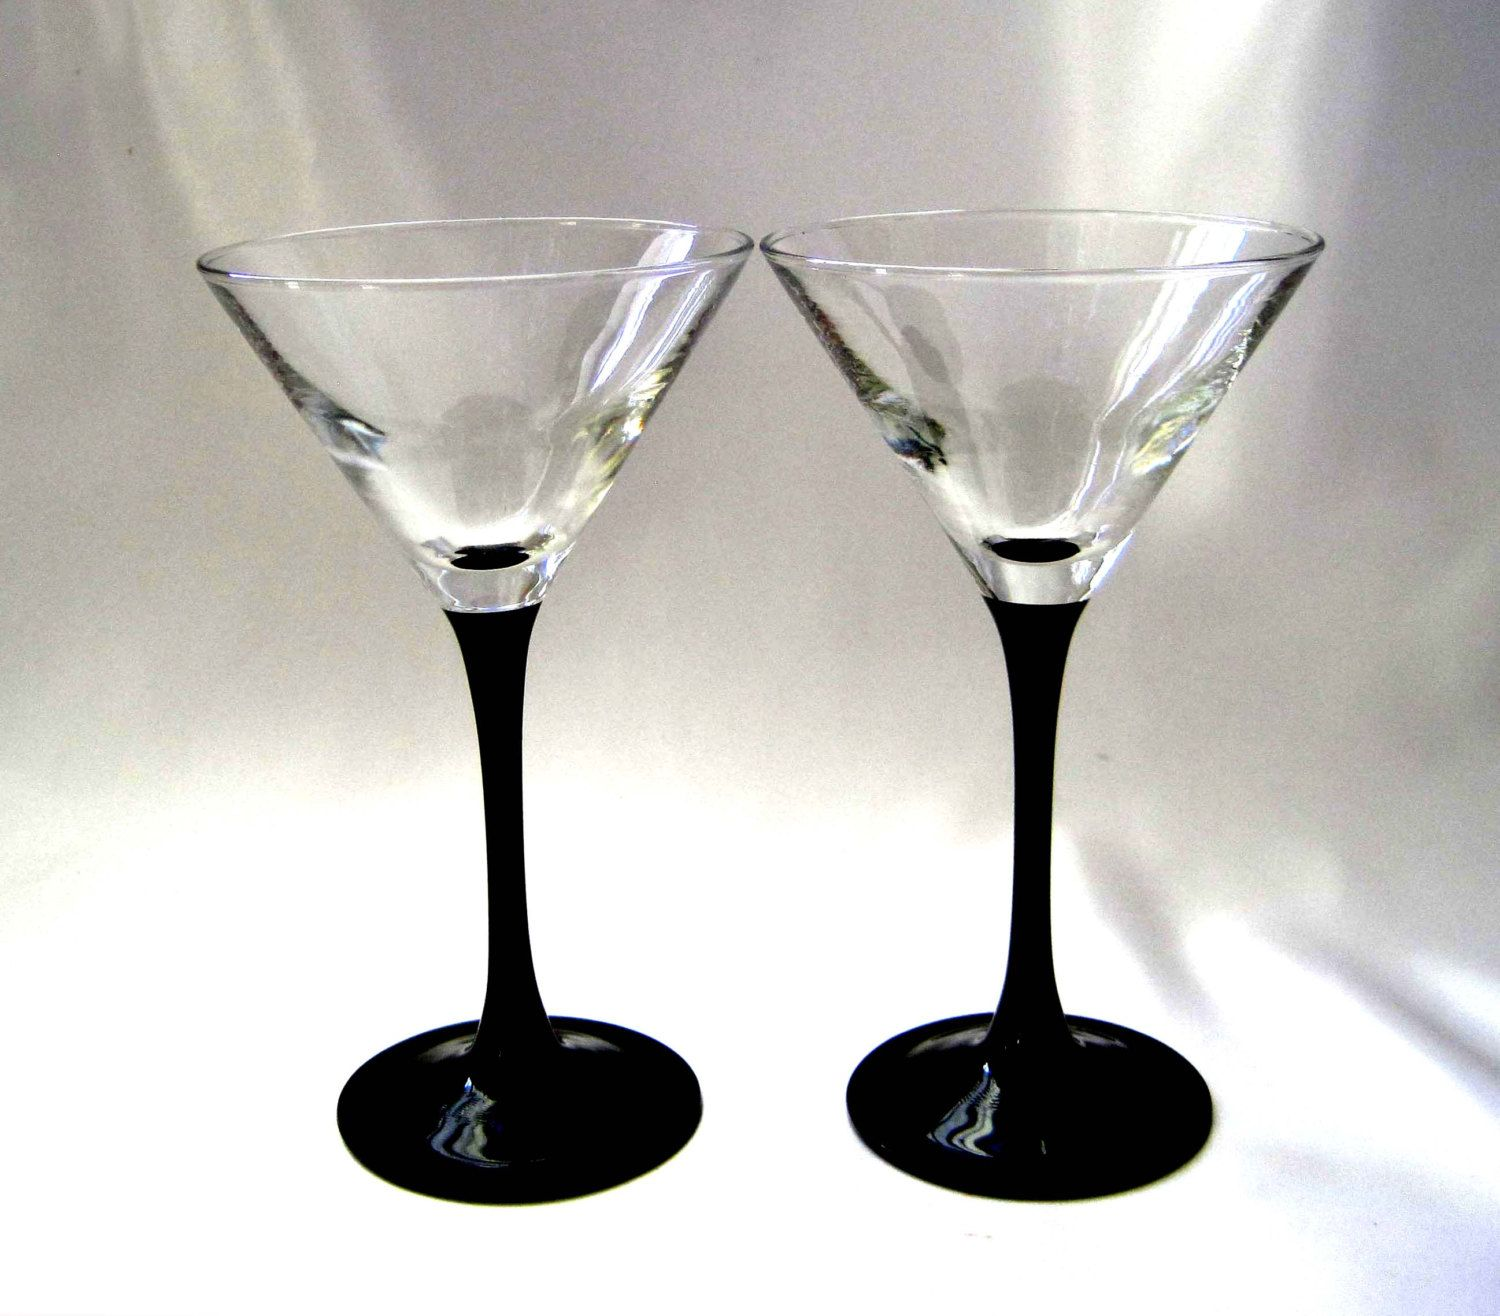 Wine Glasses With Black Stems 2 Martini Glasses Luminarc France Black Martini Glass